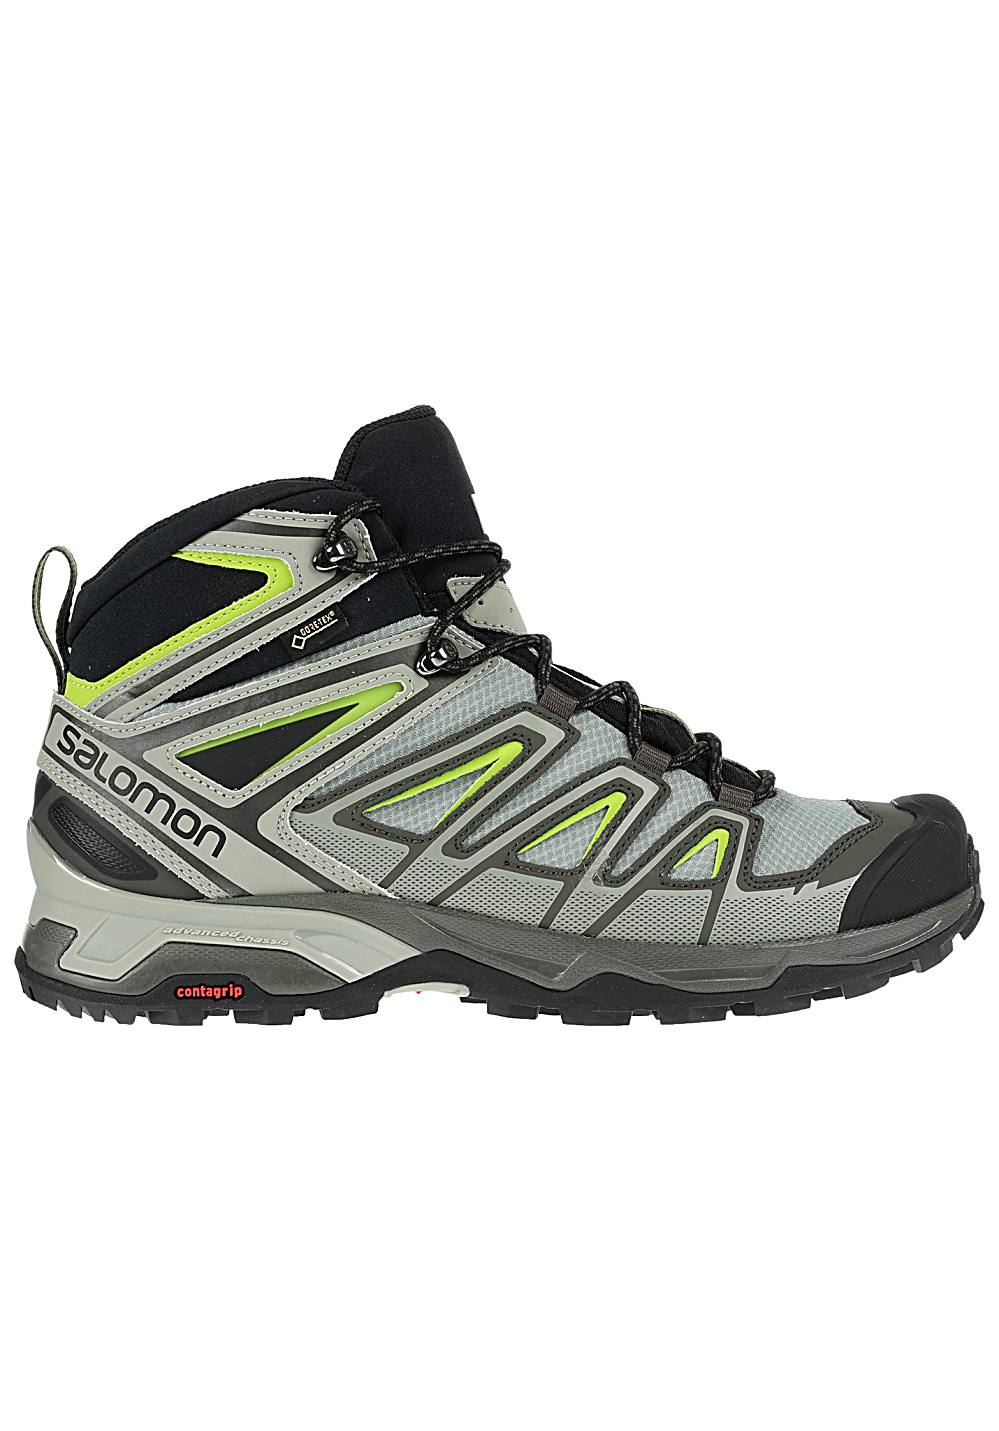 0245a9cac6 Salomon X Ultra 3 Mid GTX® - Hiking Shoes for Men - Grey